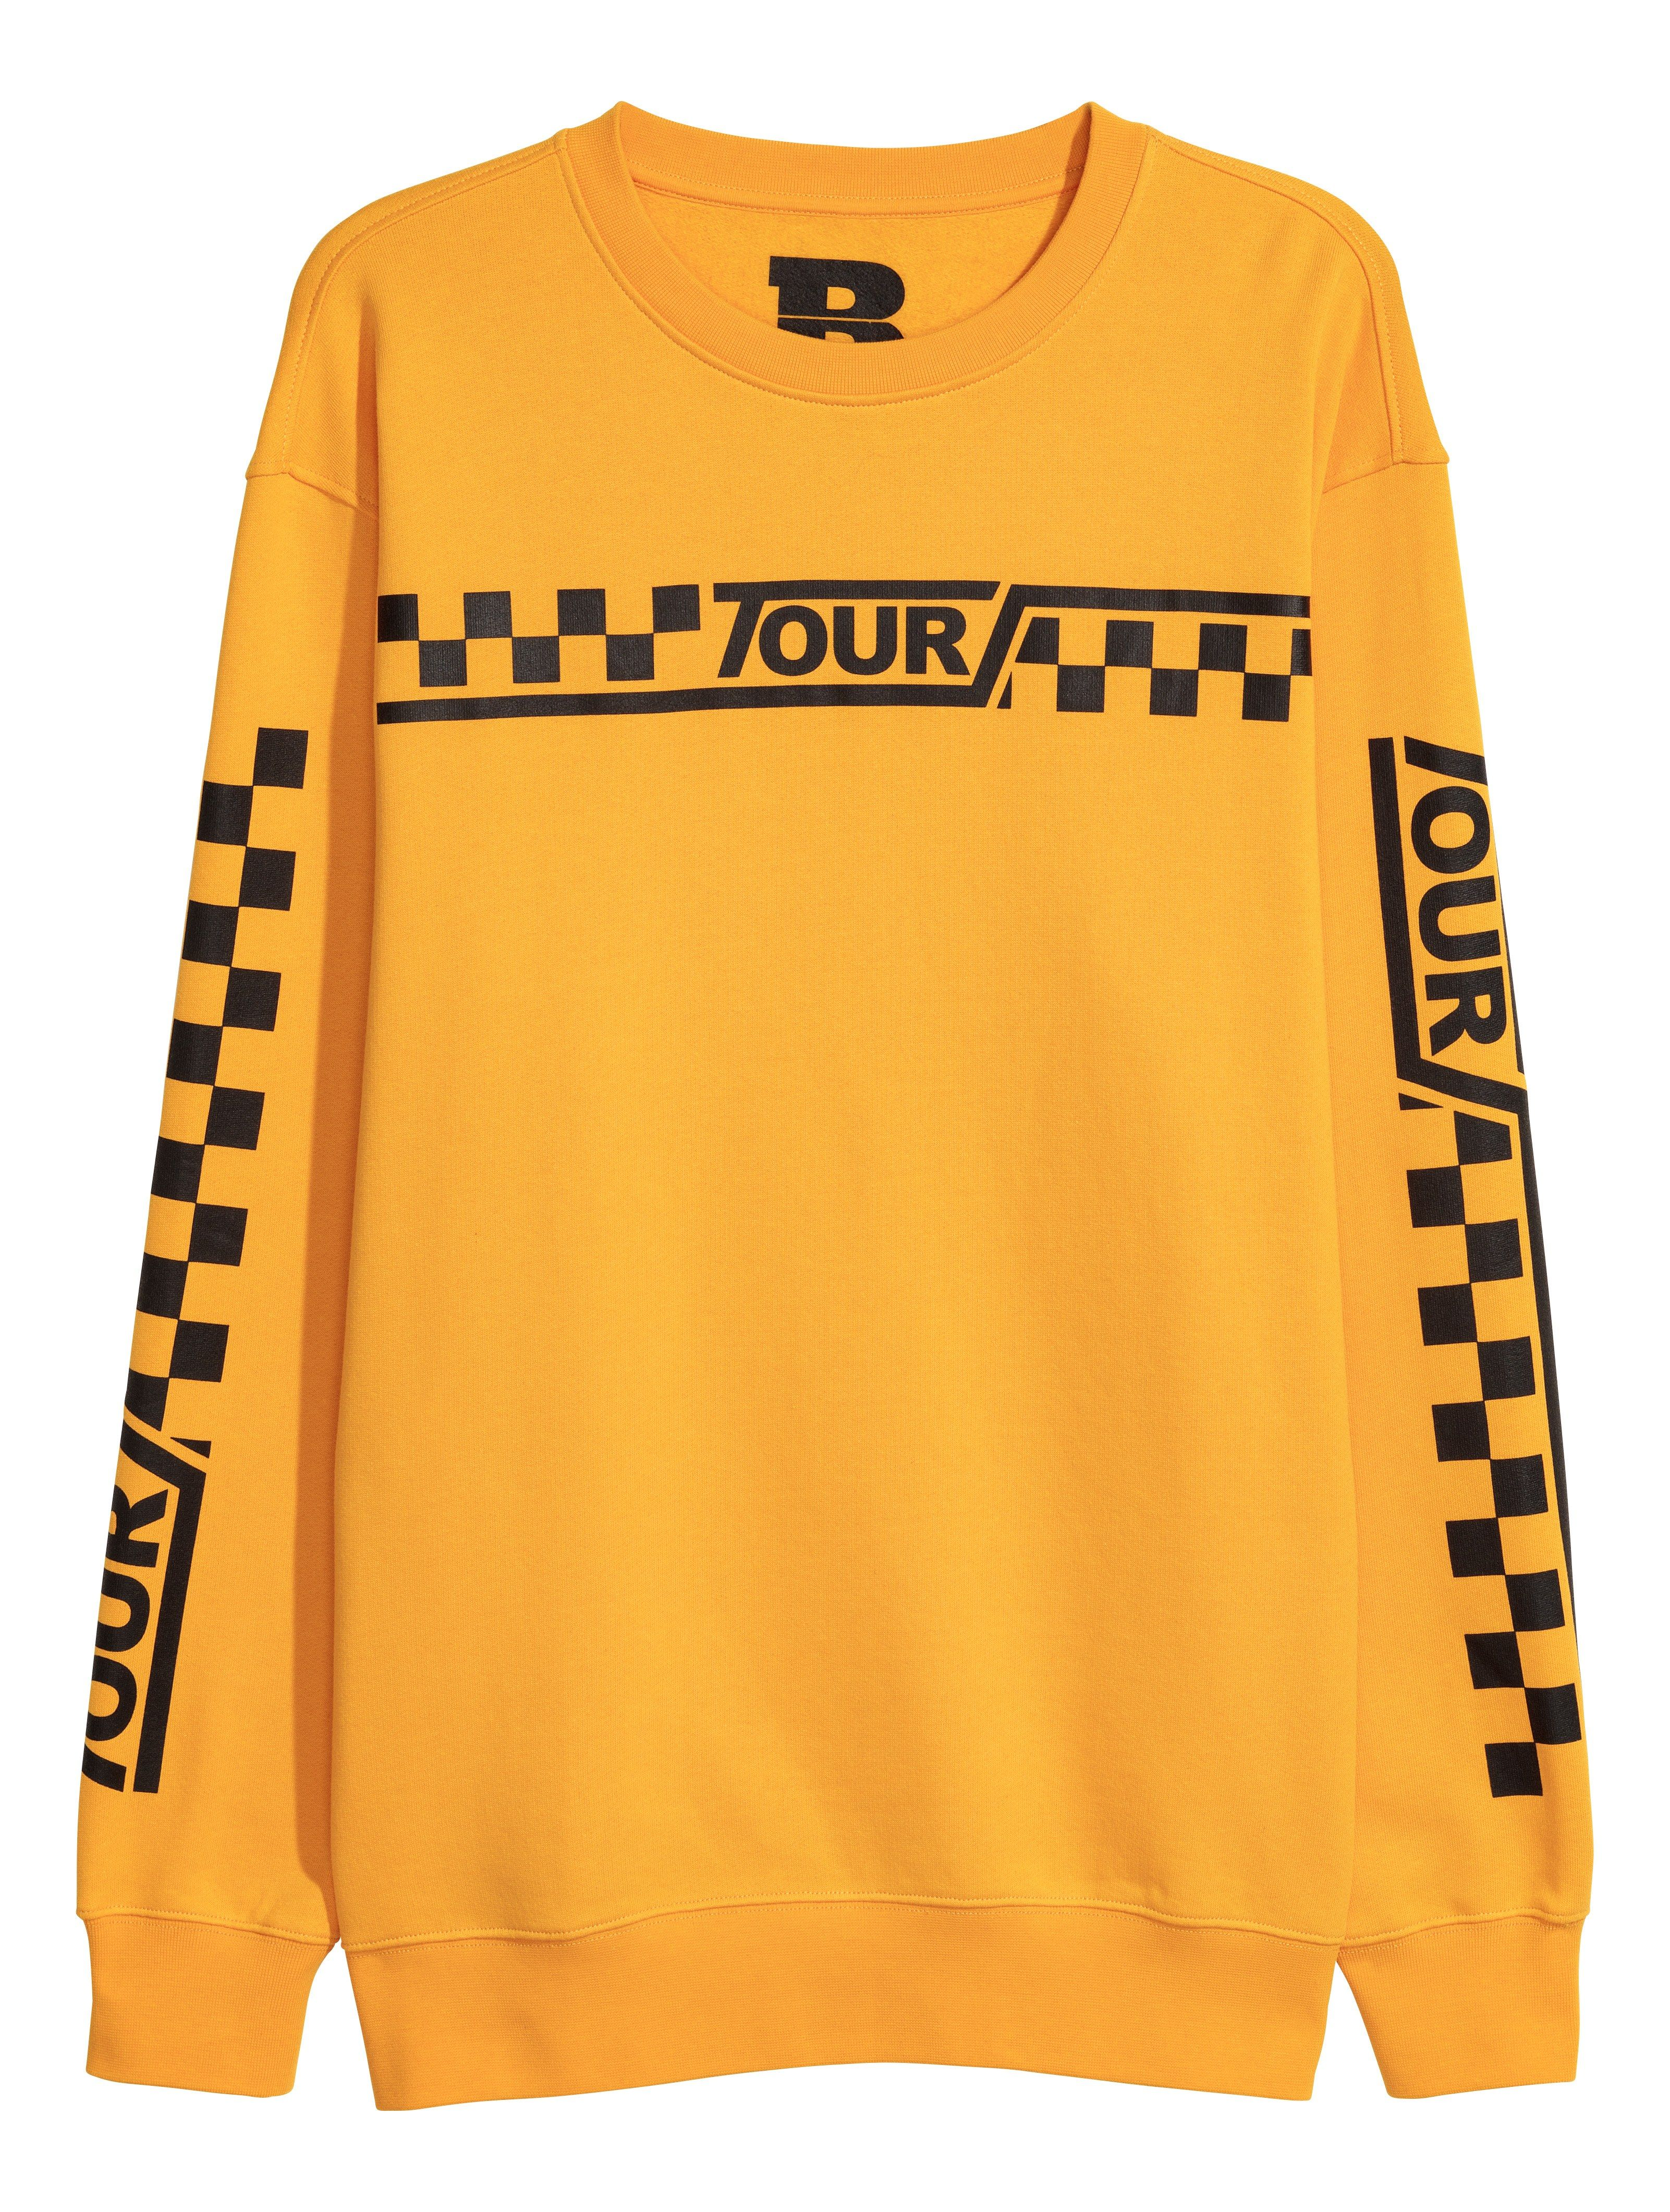 Justin Bieber Launched NEW Purpose Tour Merch — Even Though